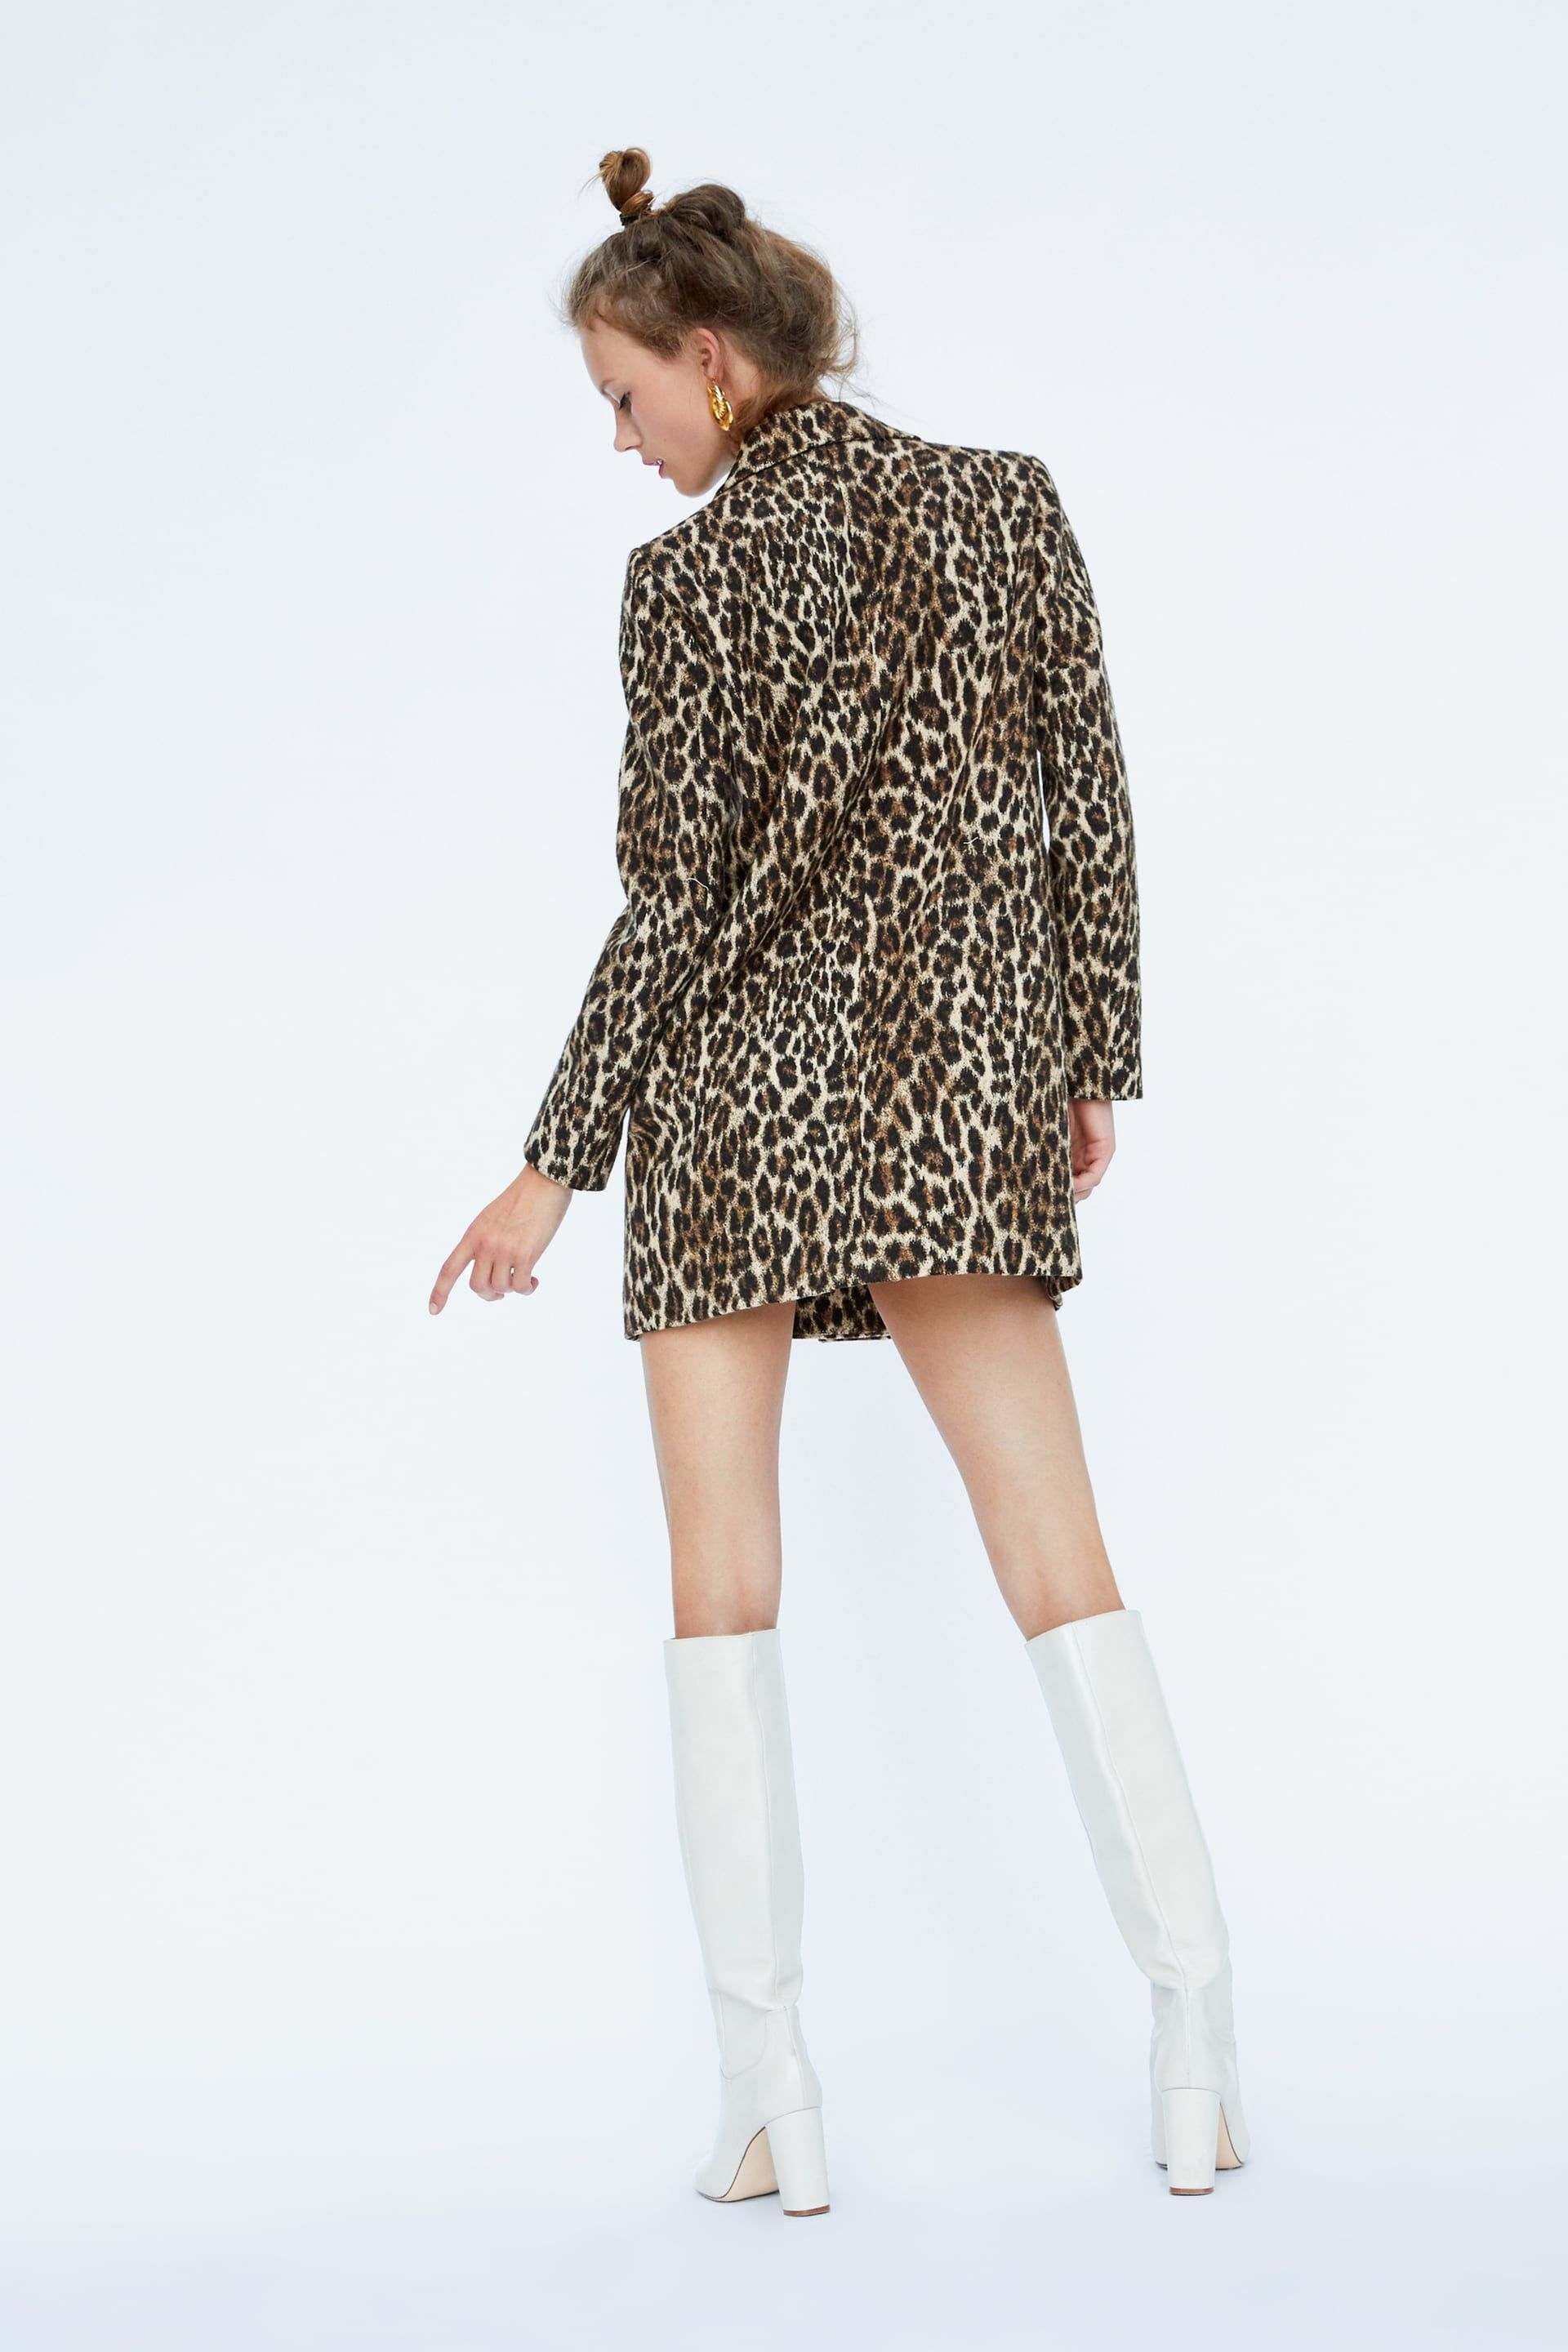 b5c707a44247 Image 4 of LEOPARD PRINT JACQUARD COAT from Zara   Affordable Charm ...